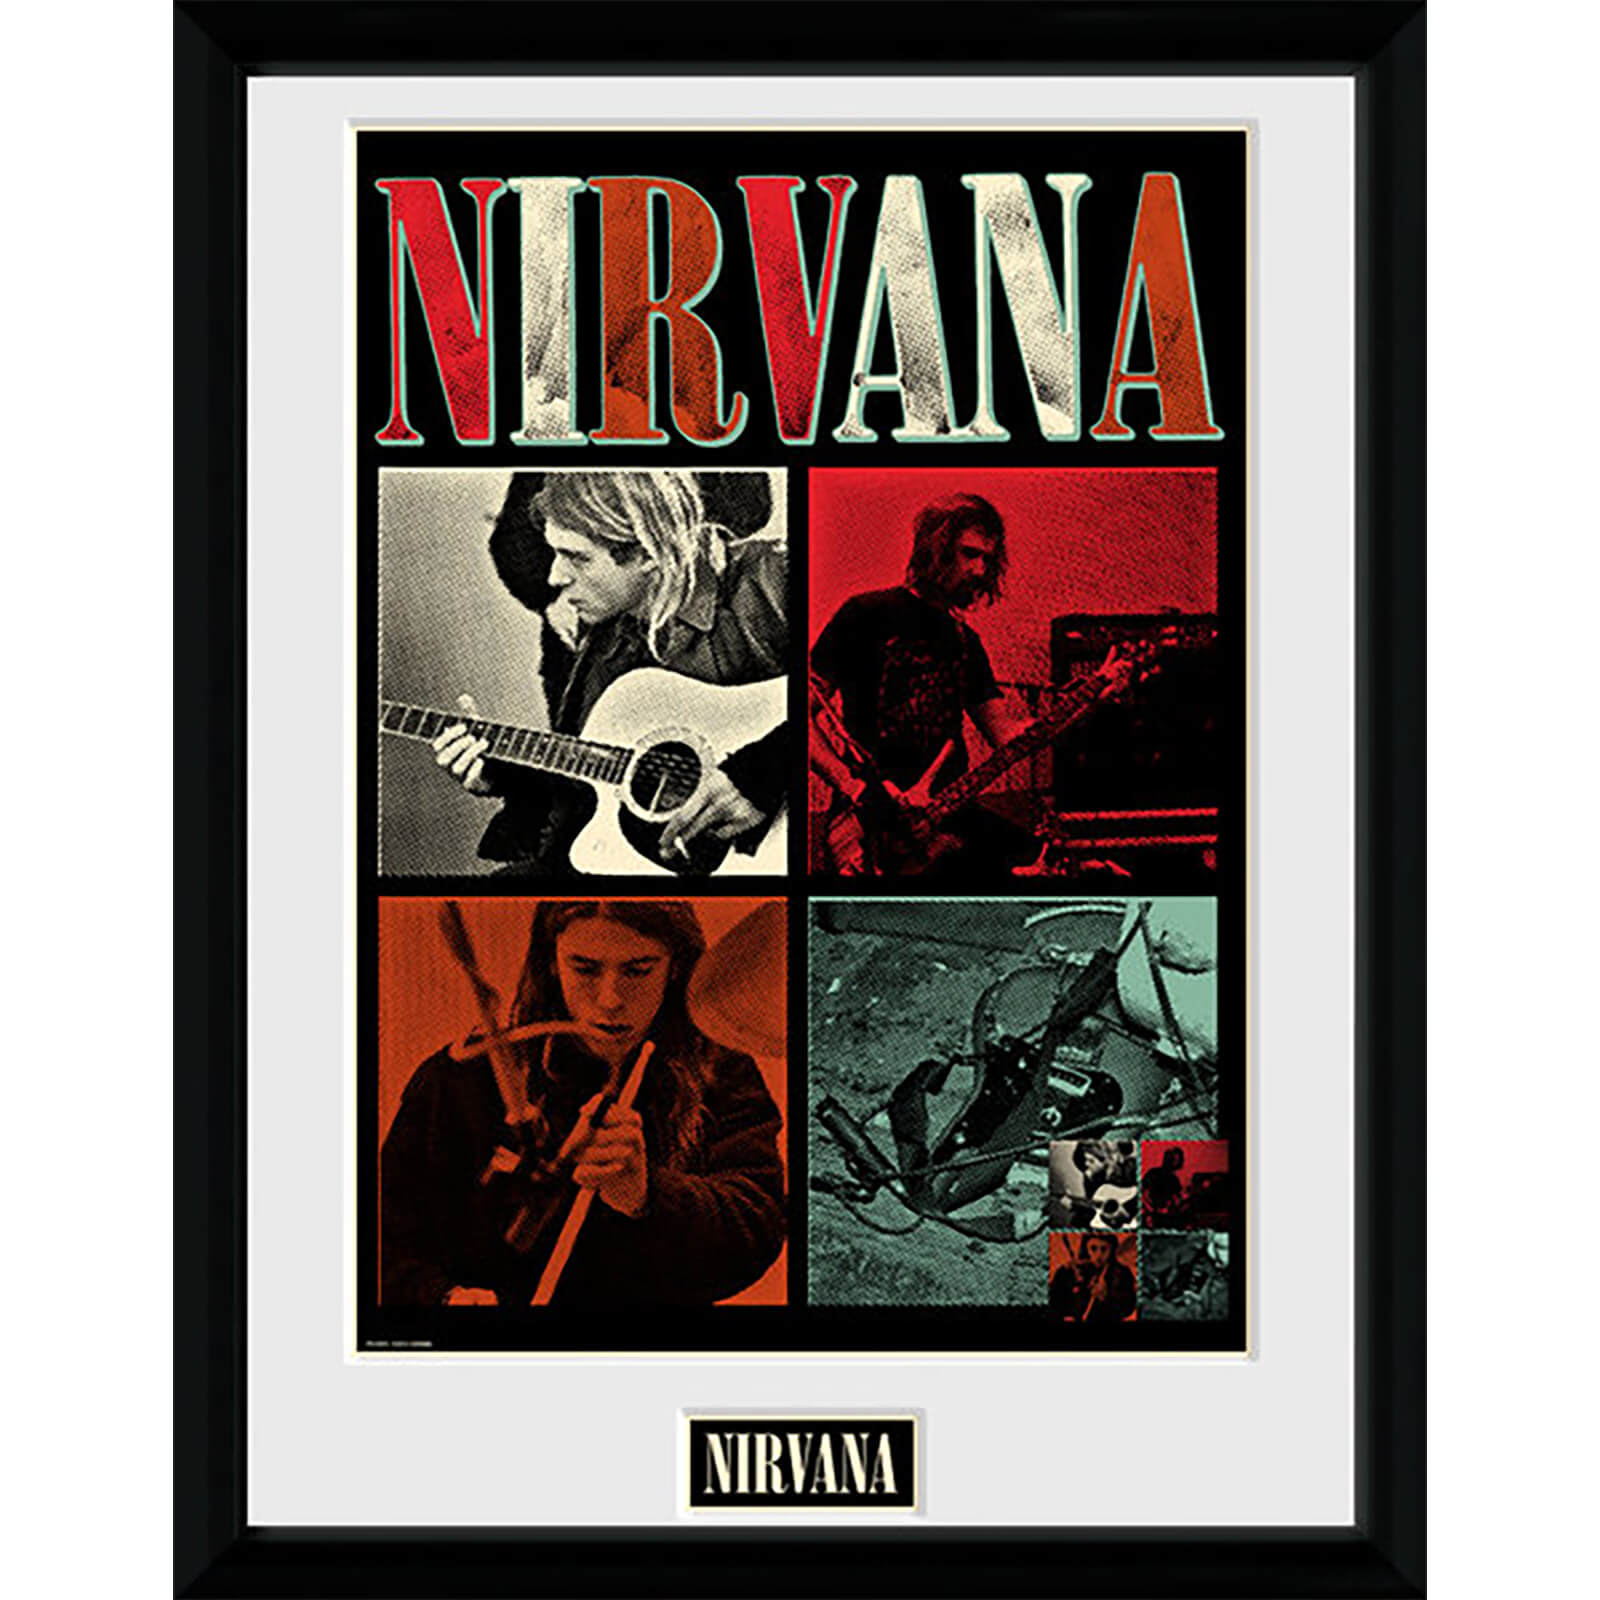 Nirvana Squares - 16 x 12 Inches Framed Photograph